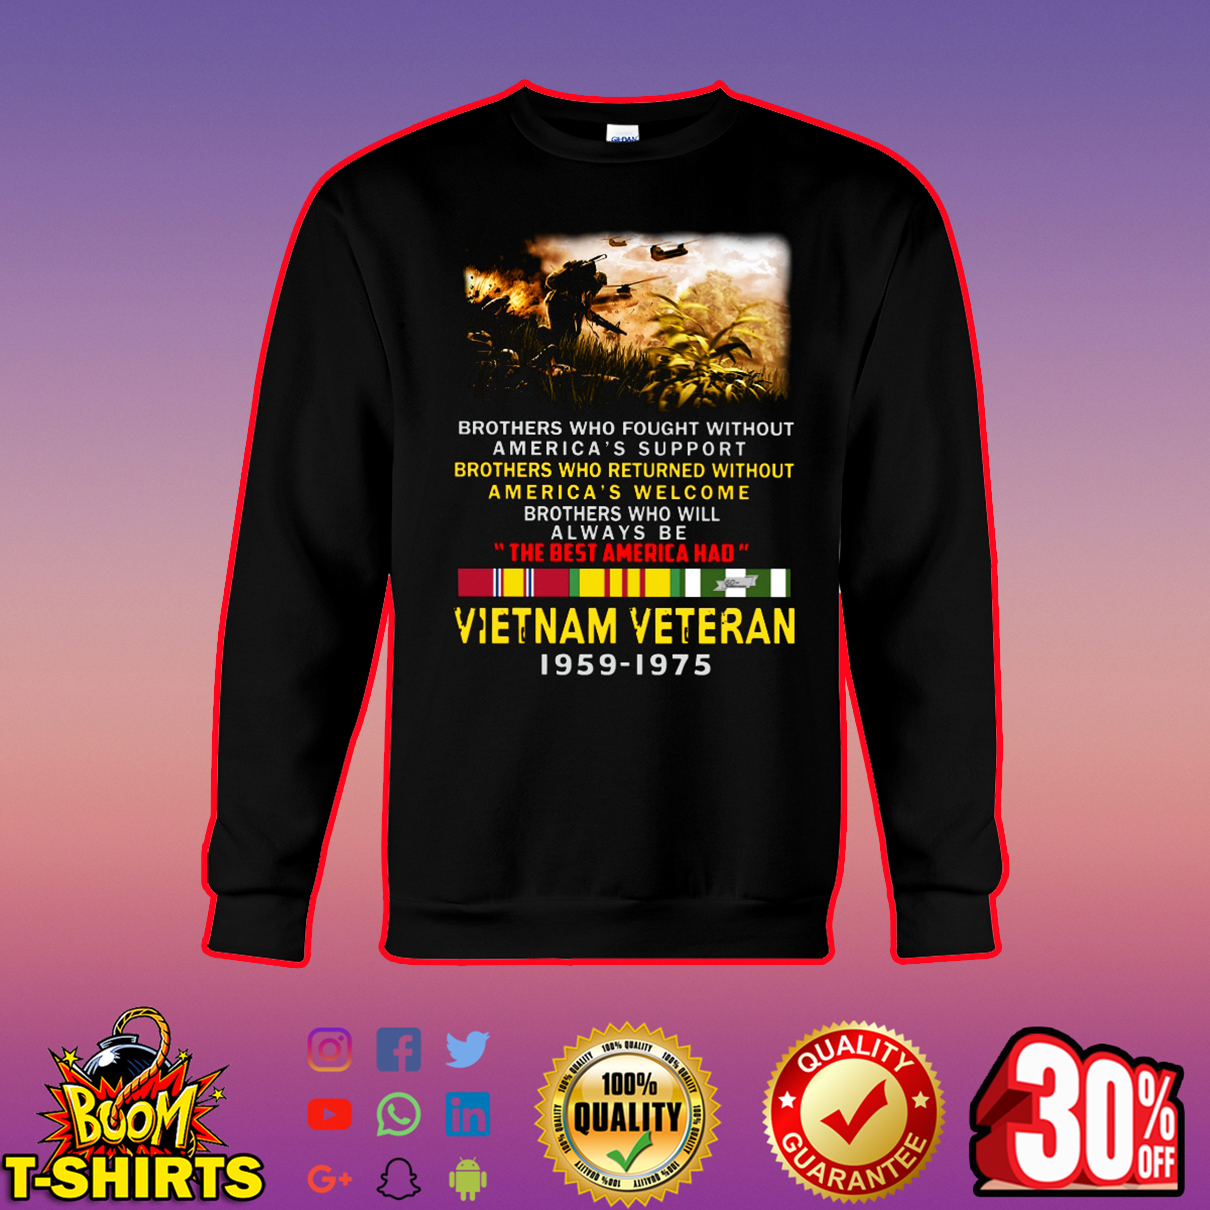 Brothers who fought without America's support Vietnam veteran 1959-1975 sweatshirt